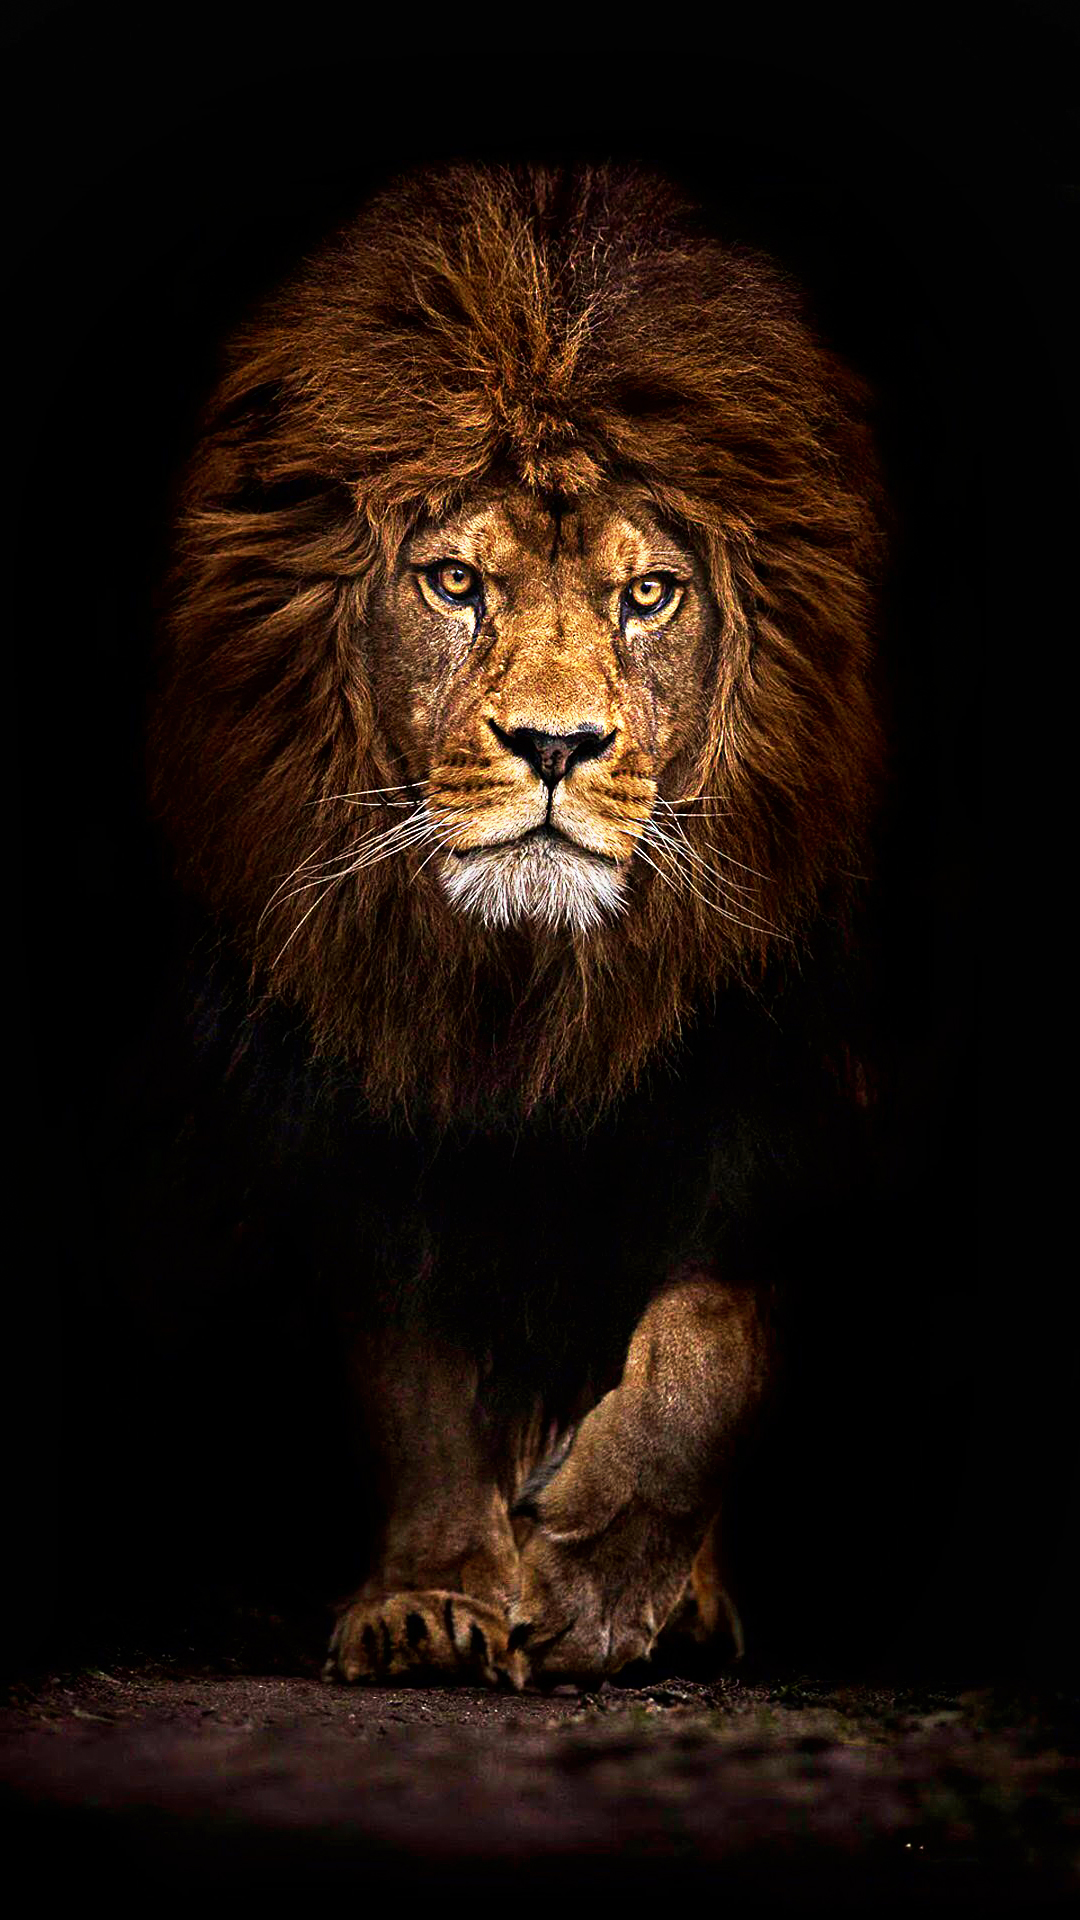 Lion Hd Wallpapers For Mobile Phones